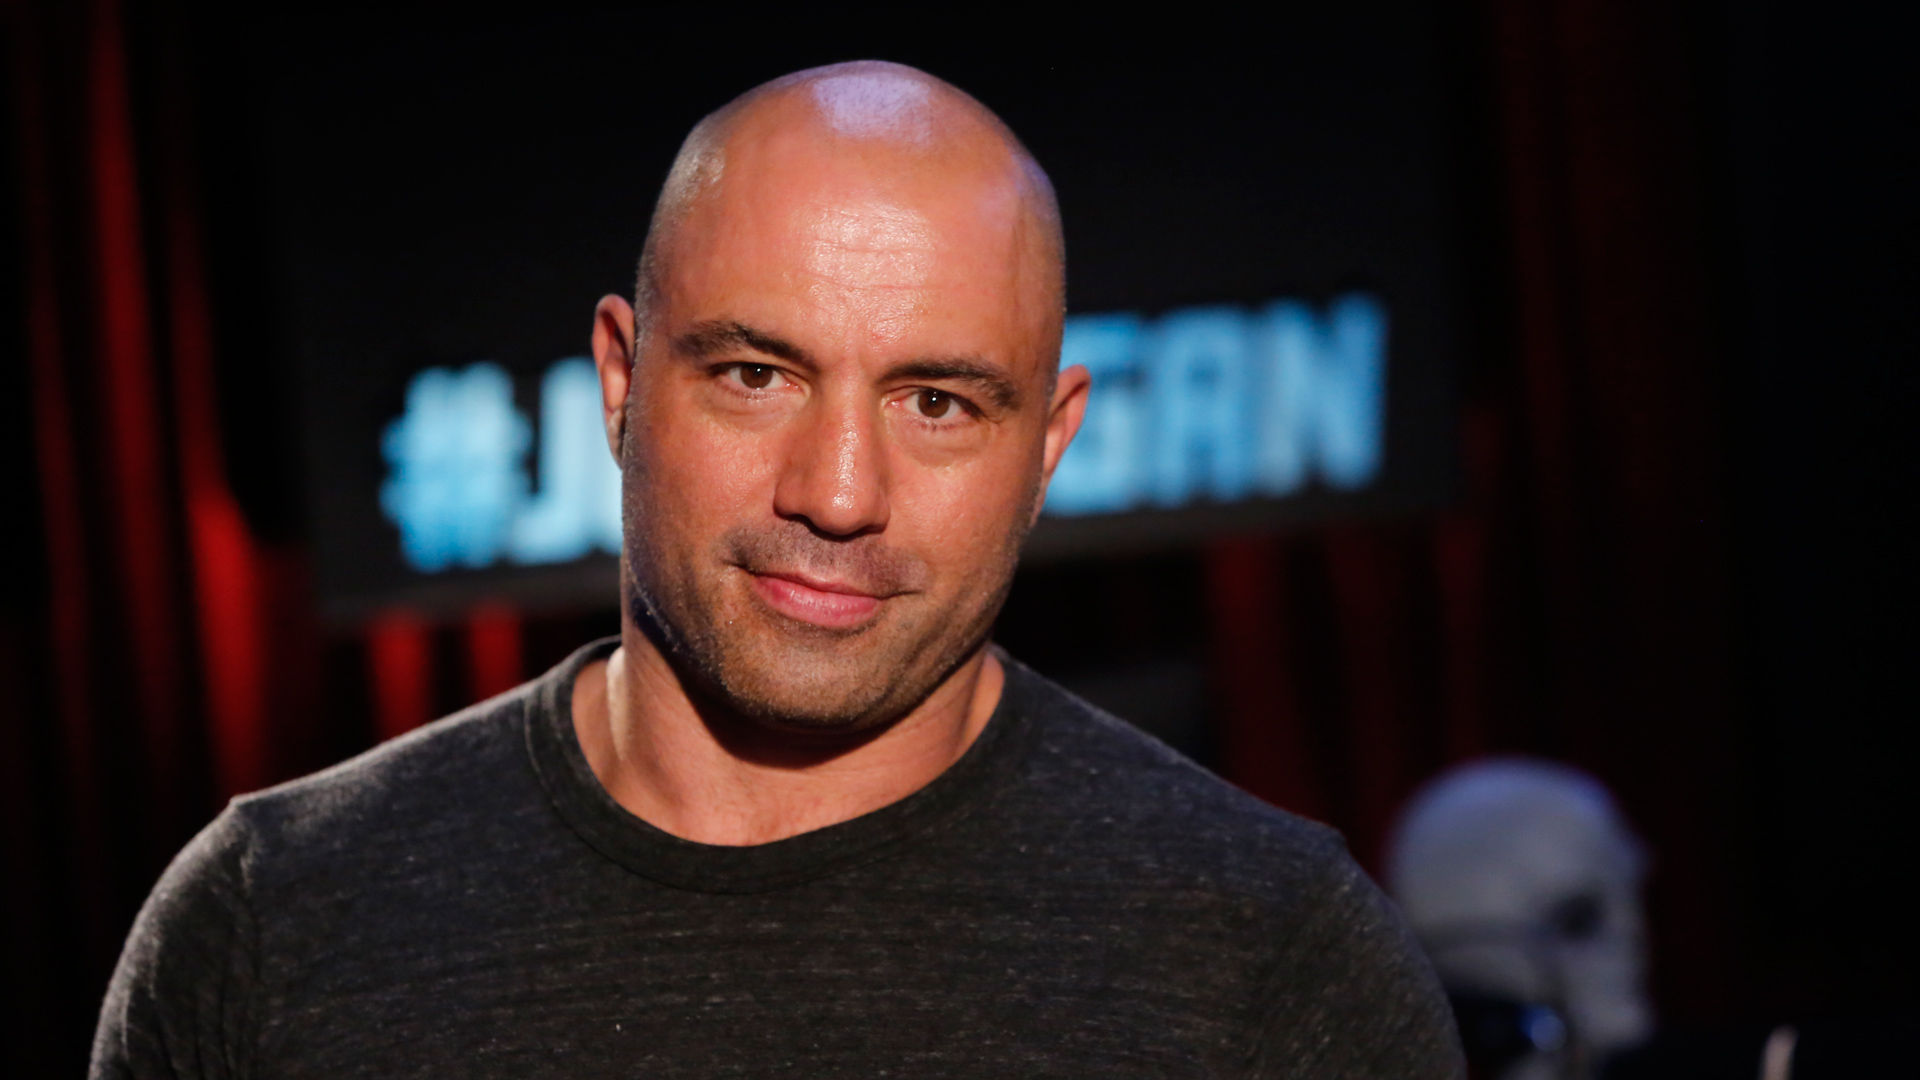 Joe Rogan at Levity Live